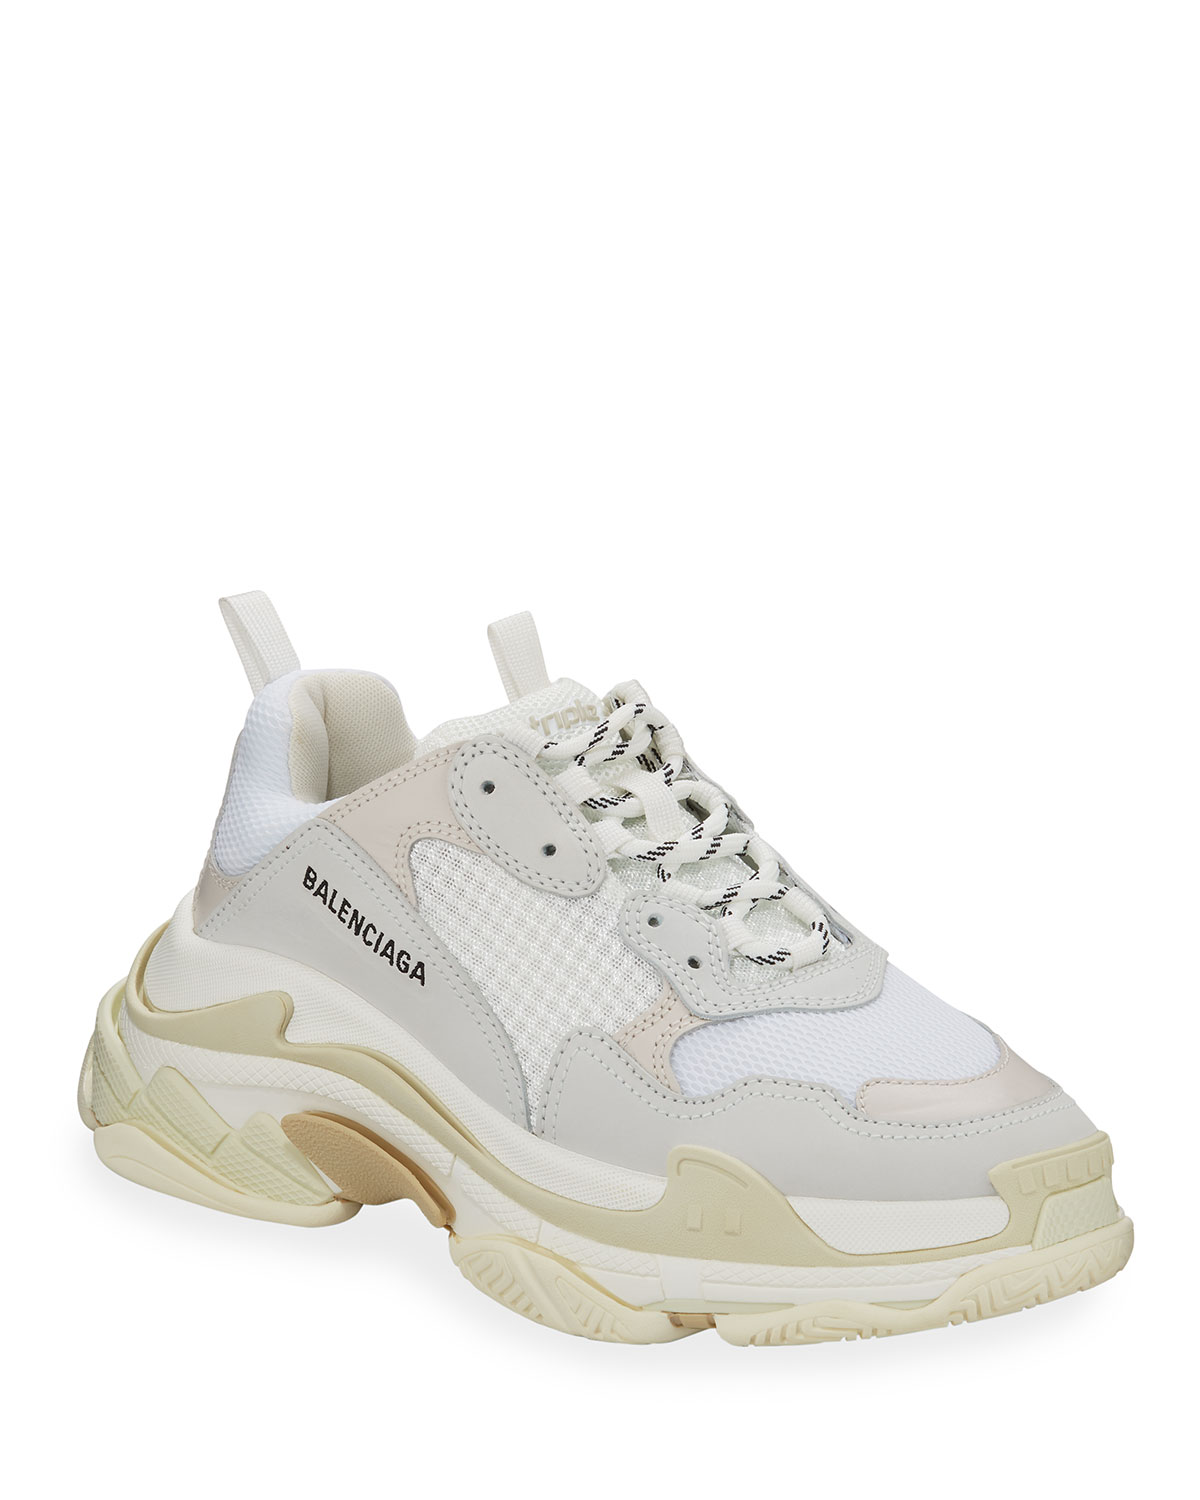 62fa04b5864f Balenciaga Men s Triple S Mesh   Leather Sneakers